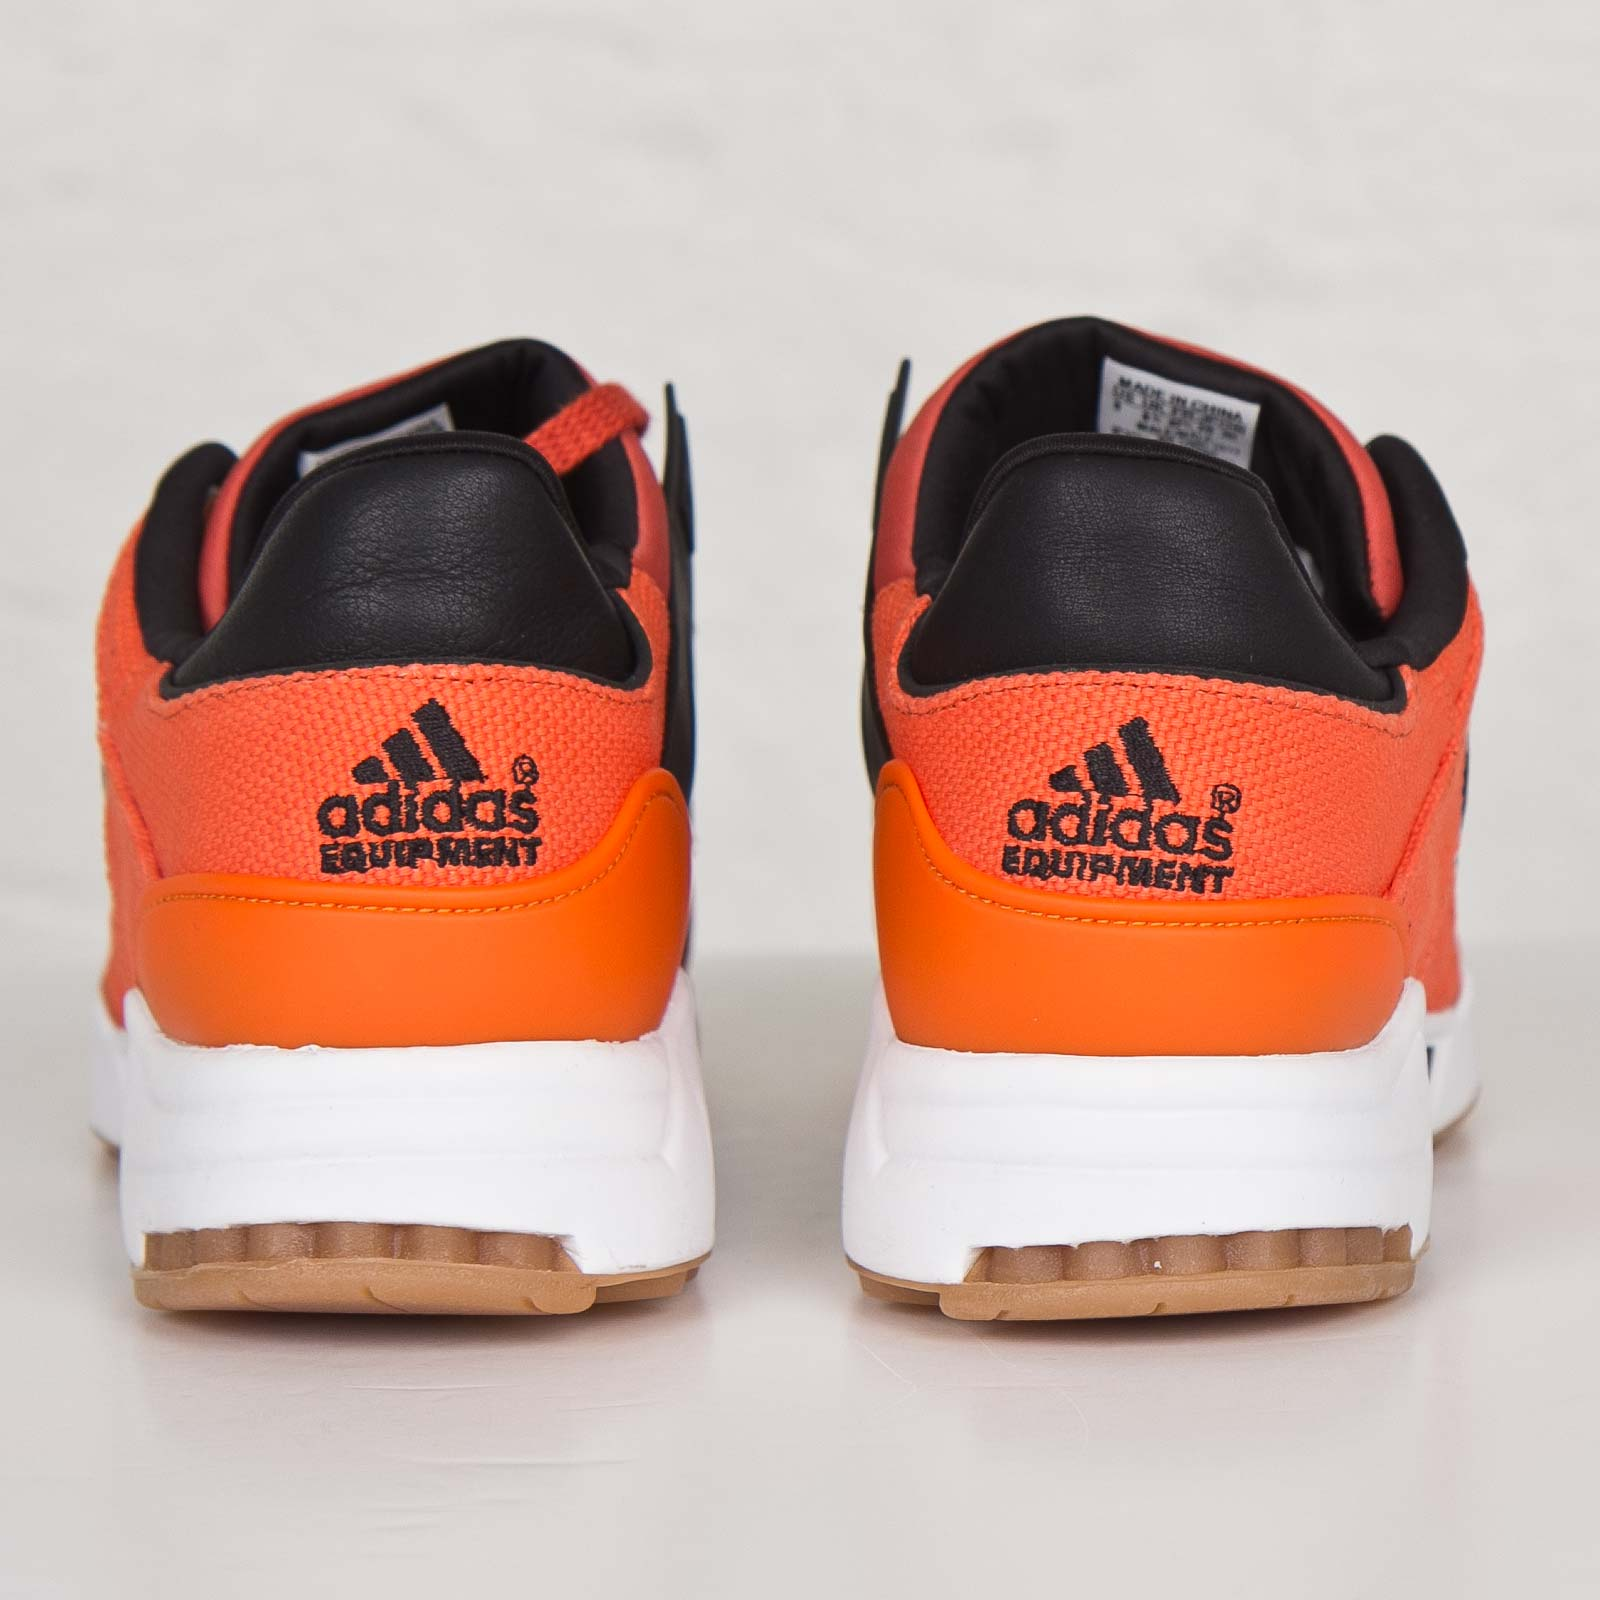 online retailer f71be 8e592 adidas Equipment Running Support 93 - B40402 - Sneakersnstuff   sneakers    streetwear online since 1999